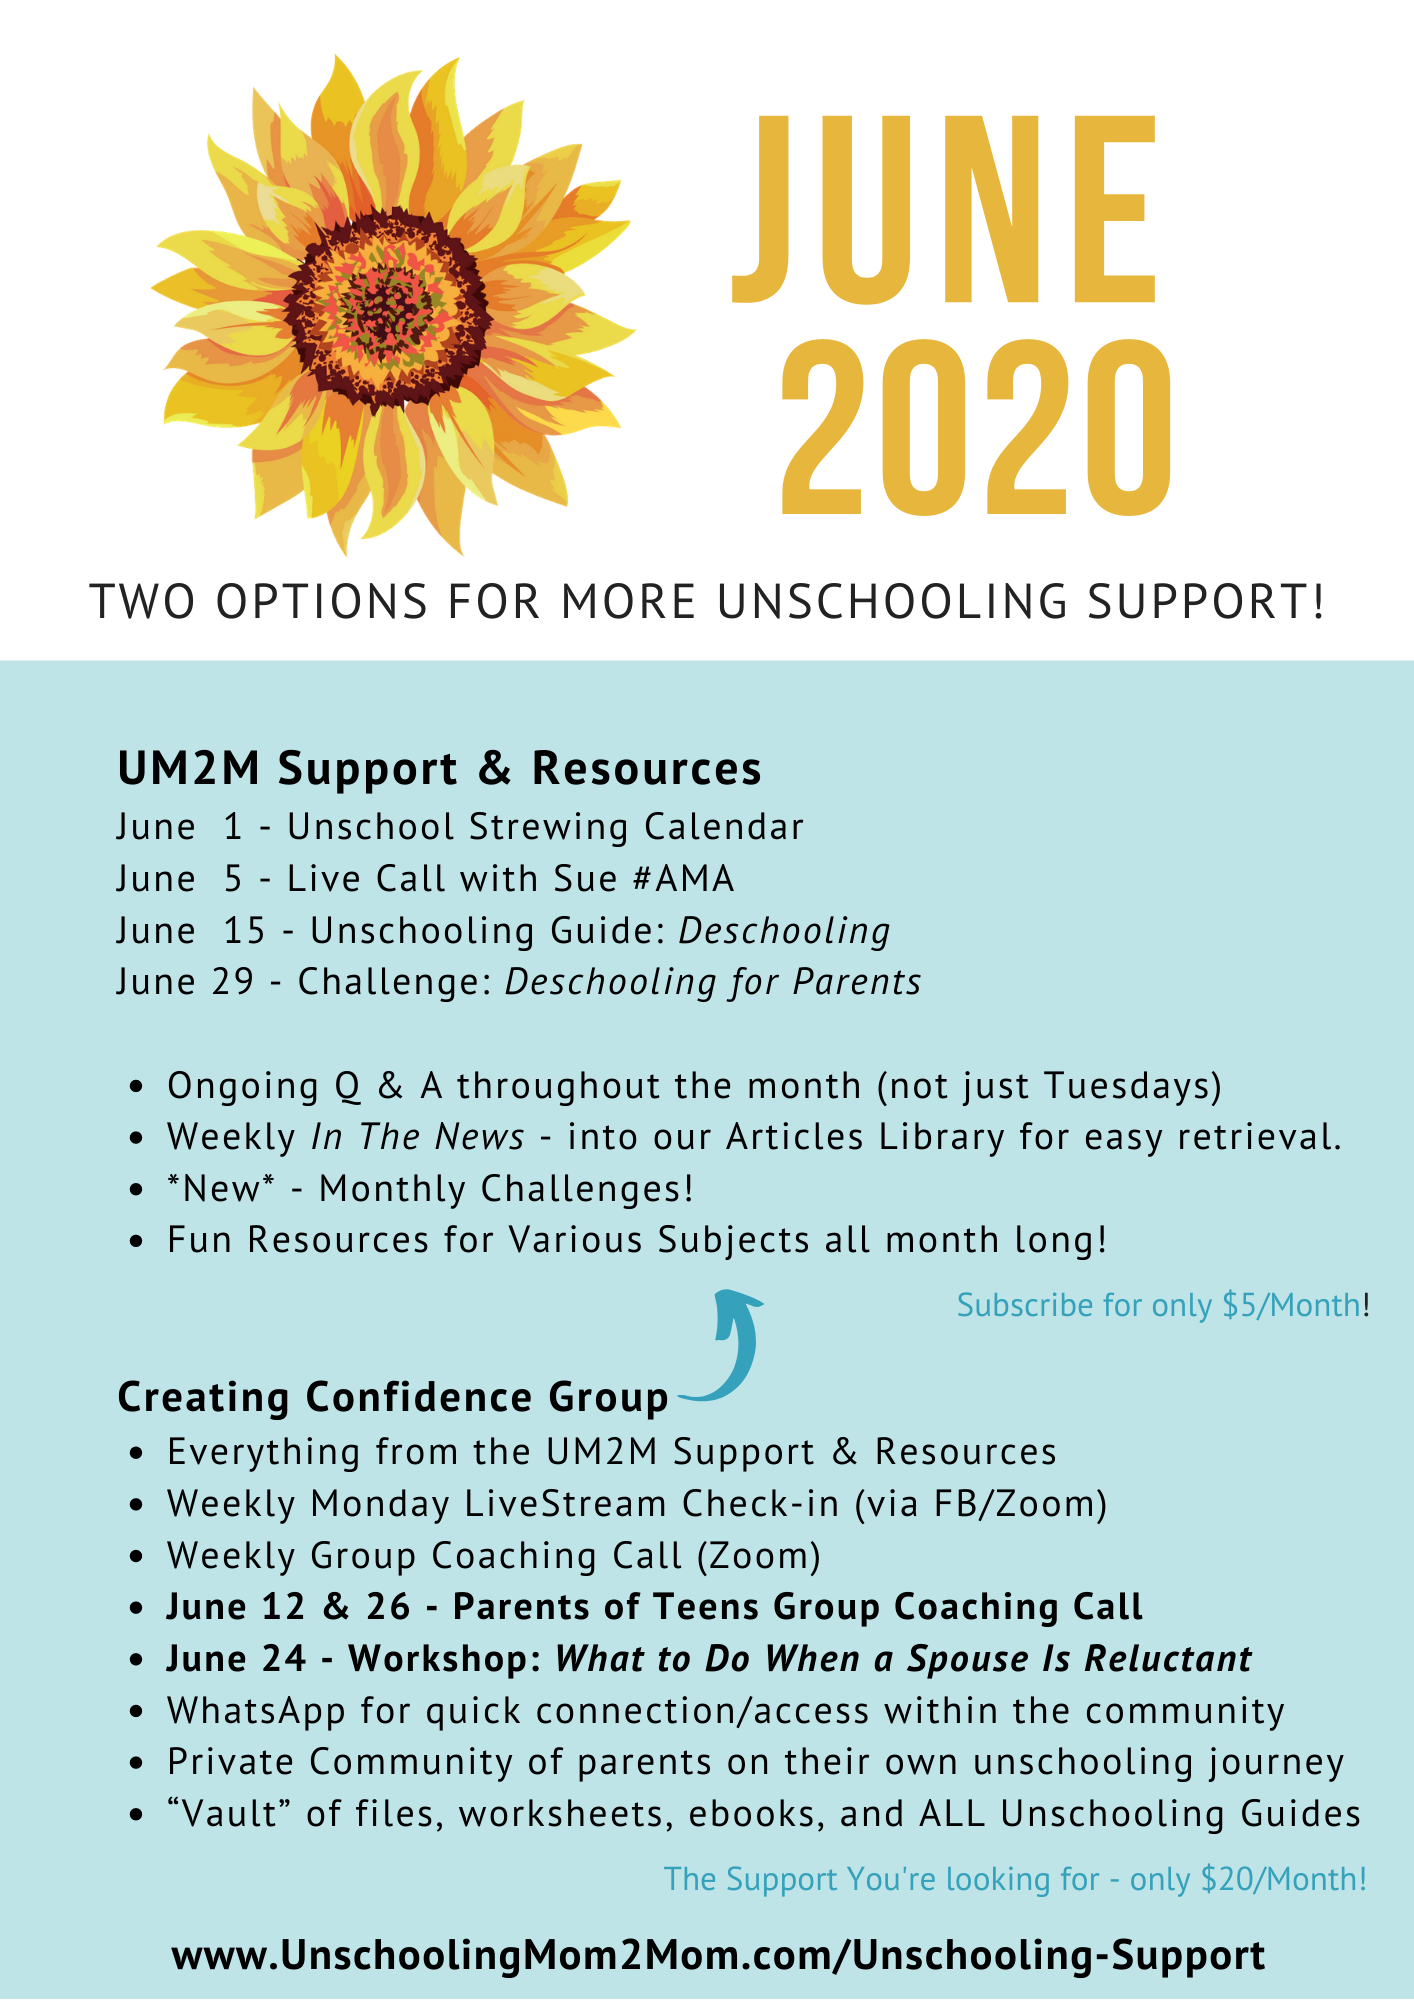 Unschooling Support in June